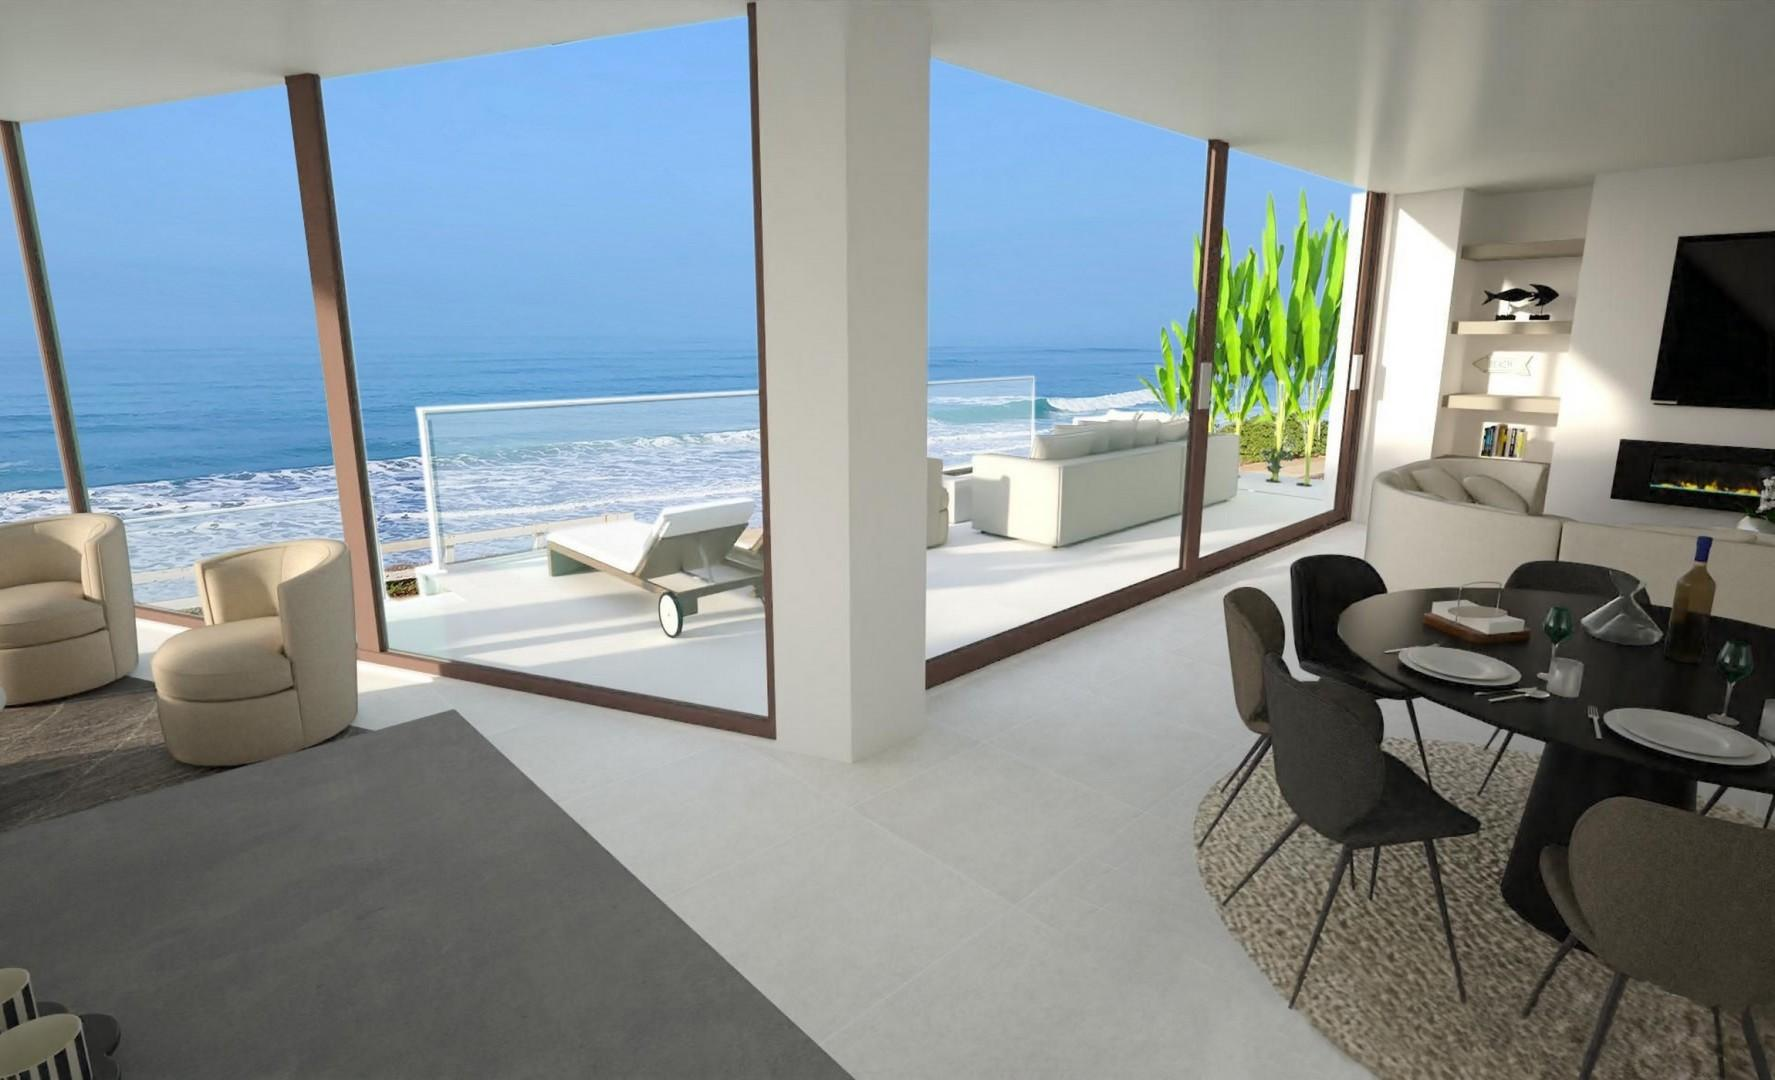 Views over the ocean and pool terrace